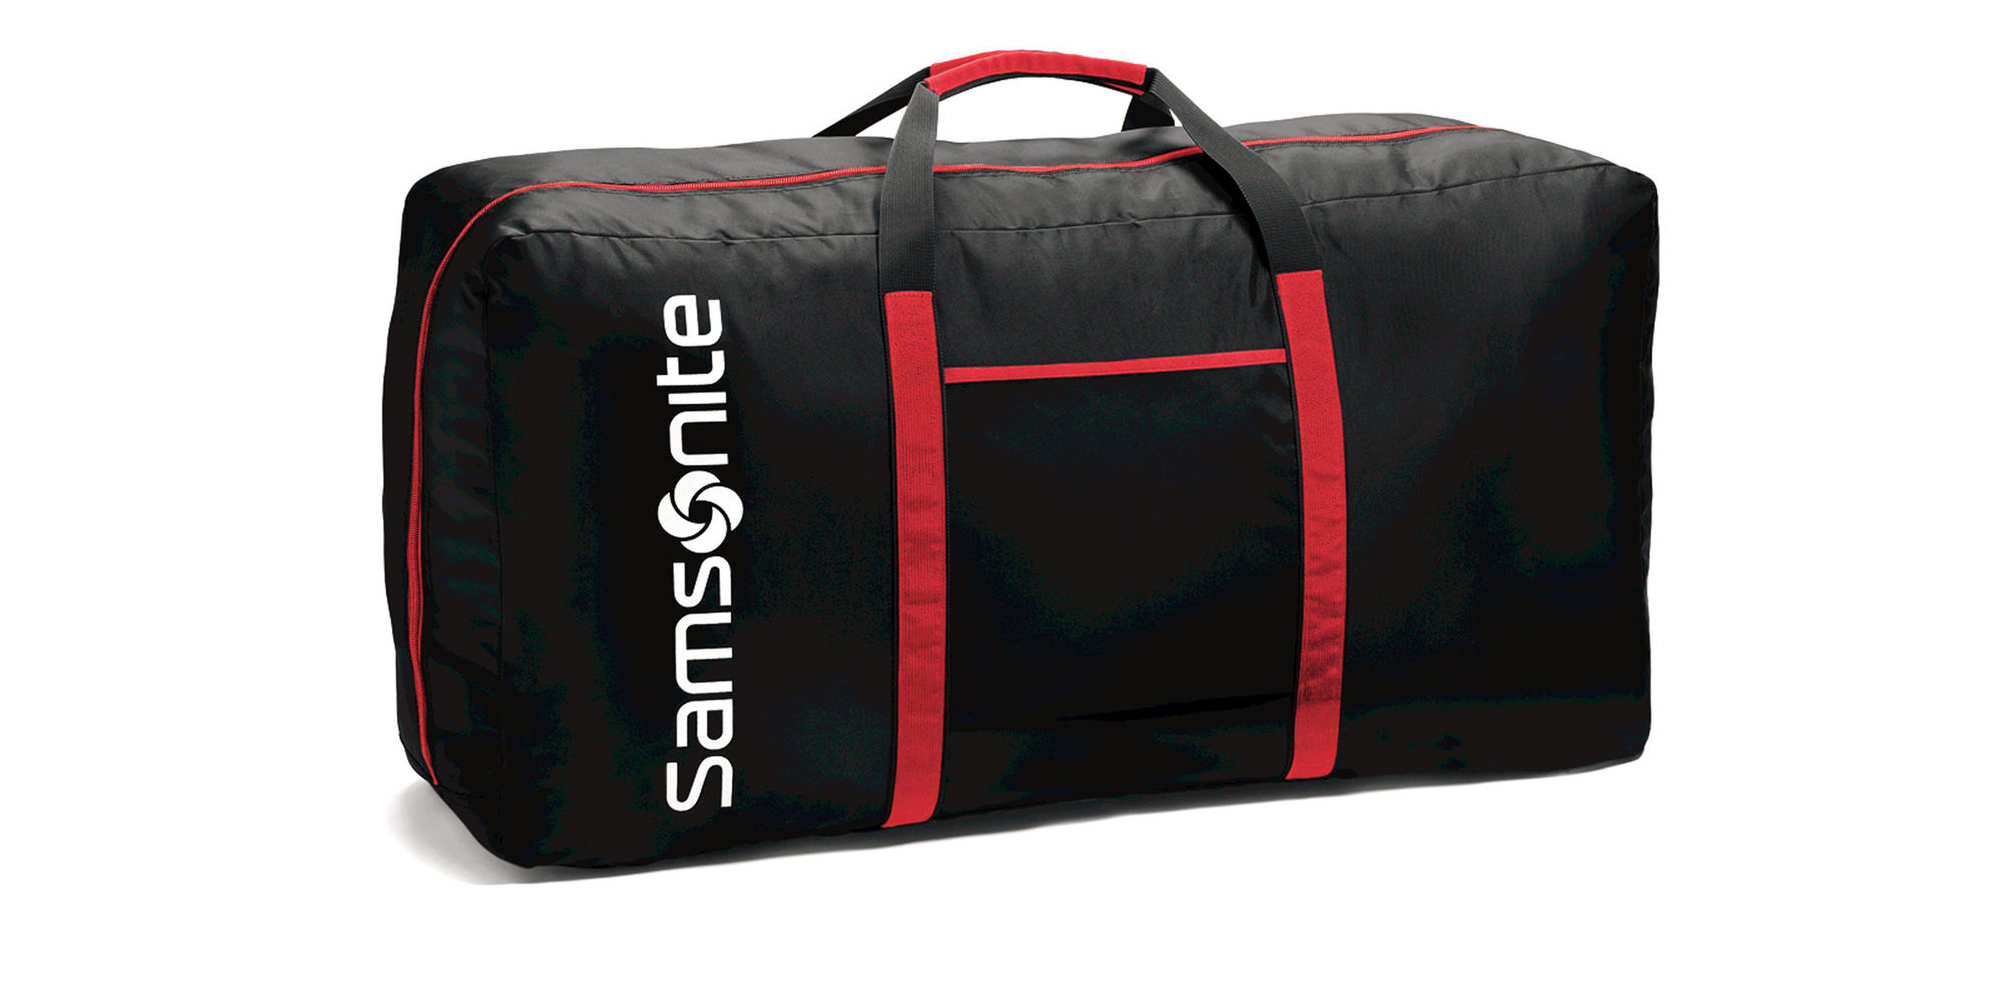 Samsonite S Tote A Ton Duffle Bag Drops To Low Of 16 Shipped 35 Off 9to5toys